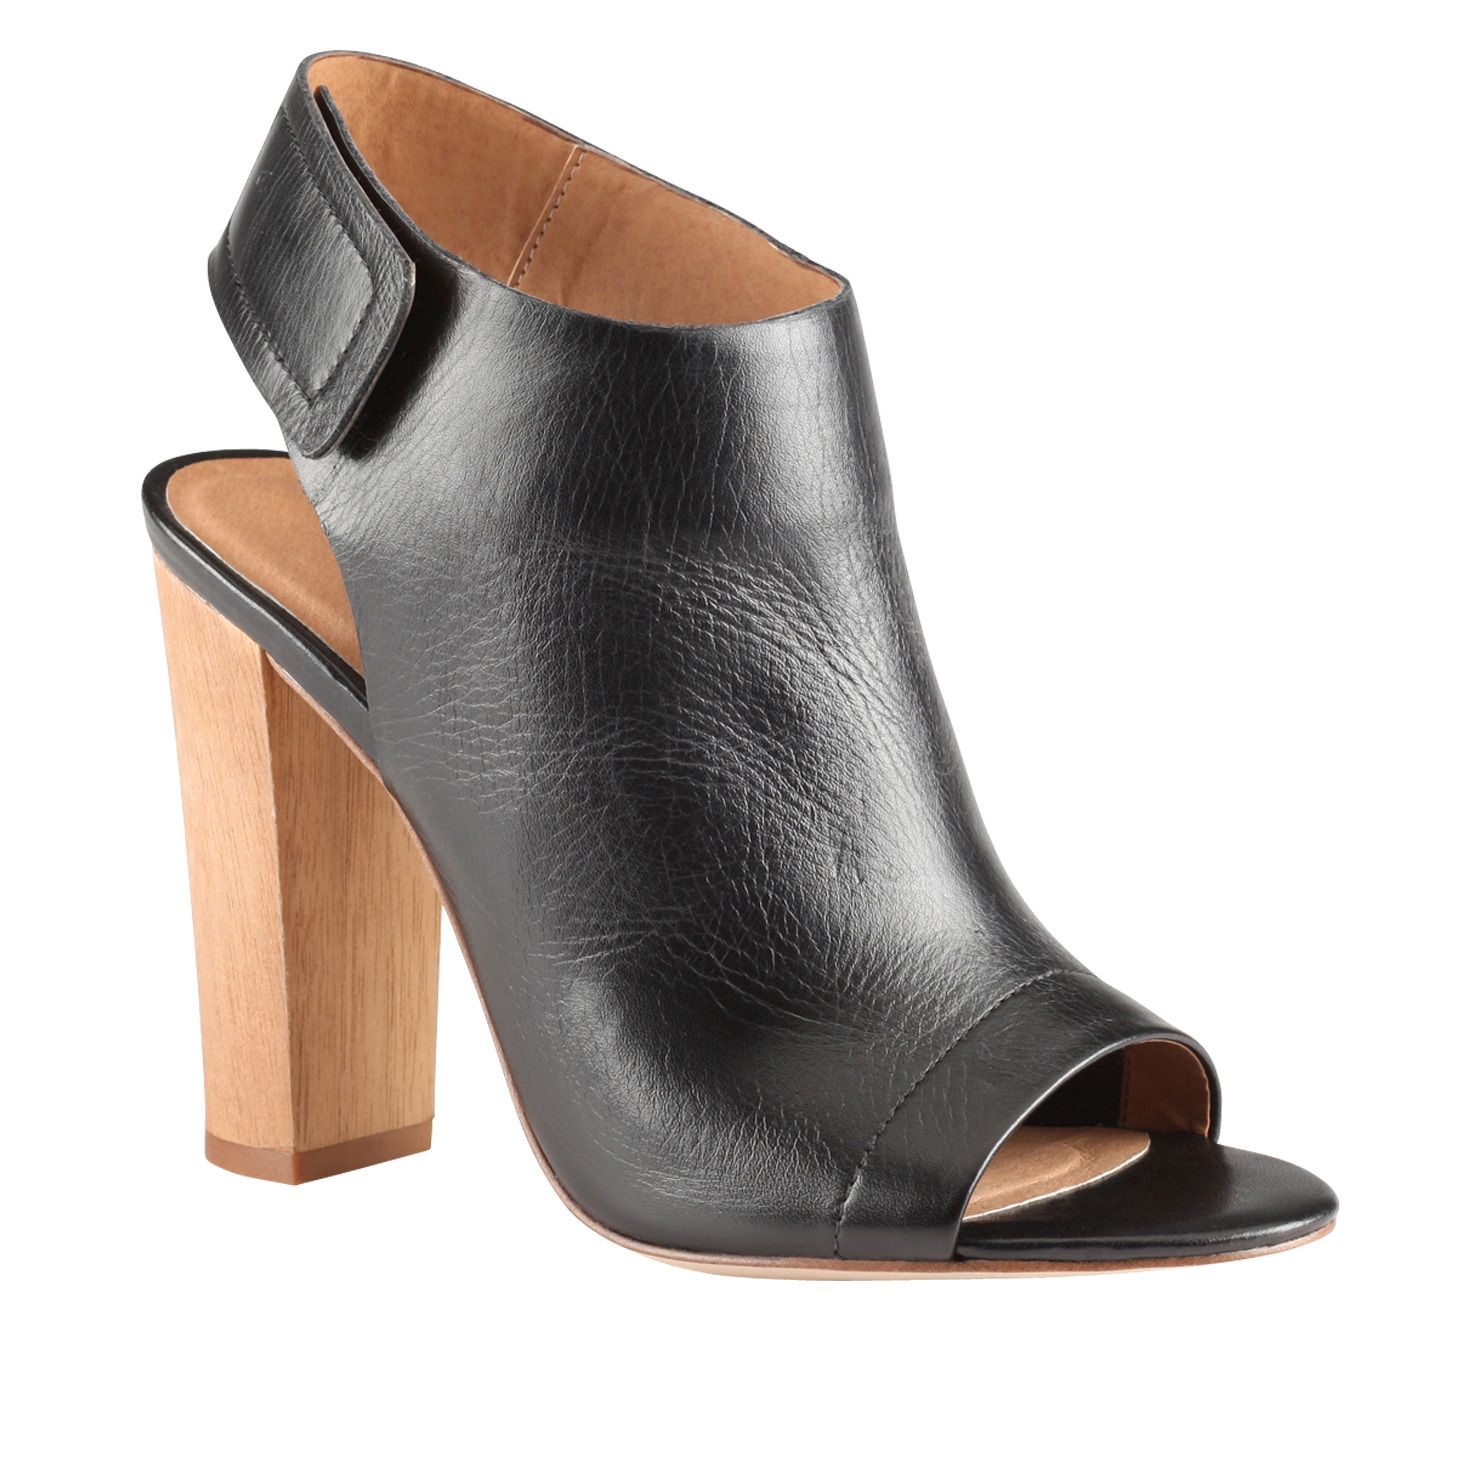 JAGGARD - women s peep-toe pumps shoes for sale at ALDO Shoes ... 0eee0c3e96